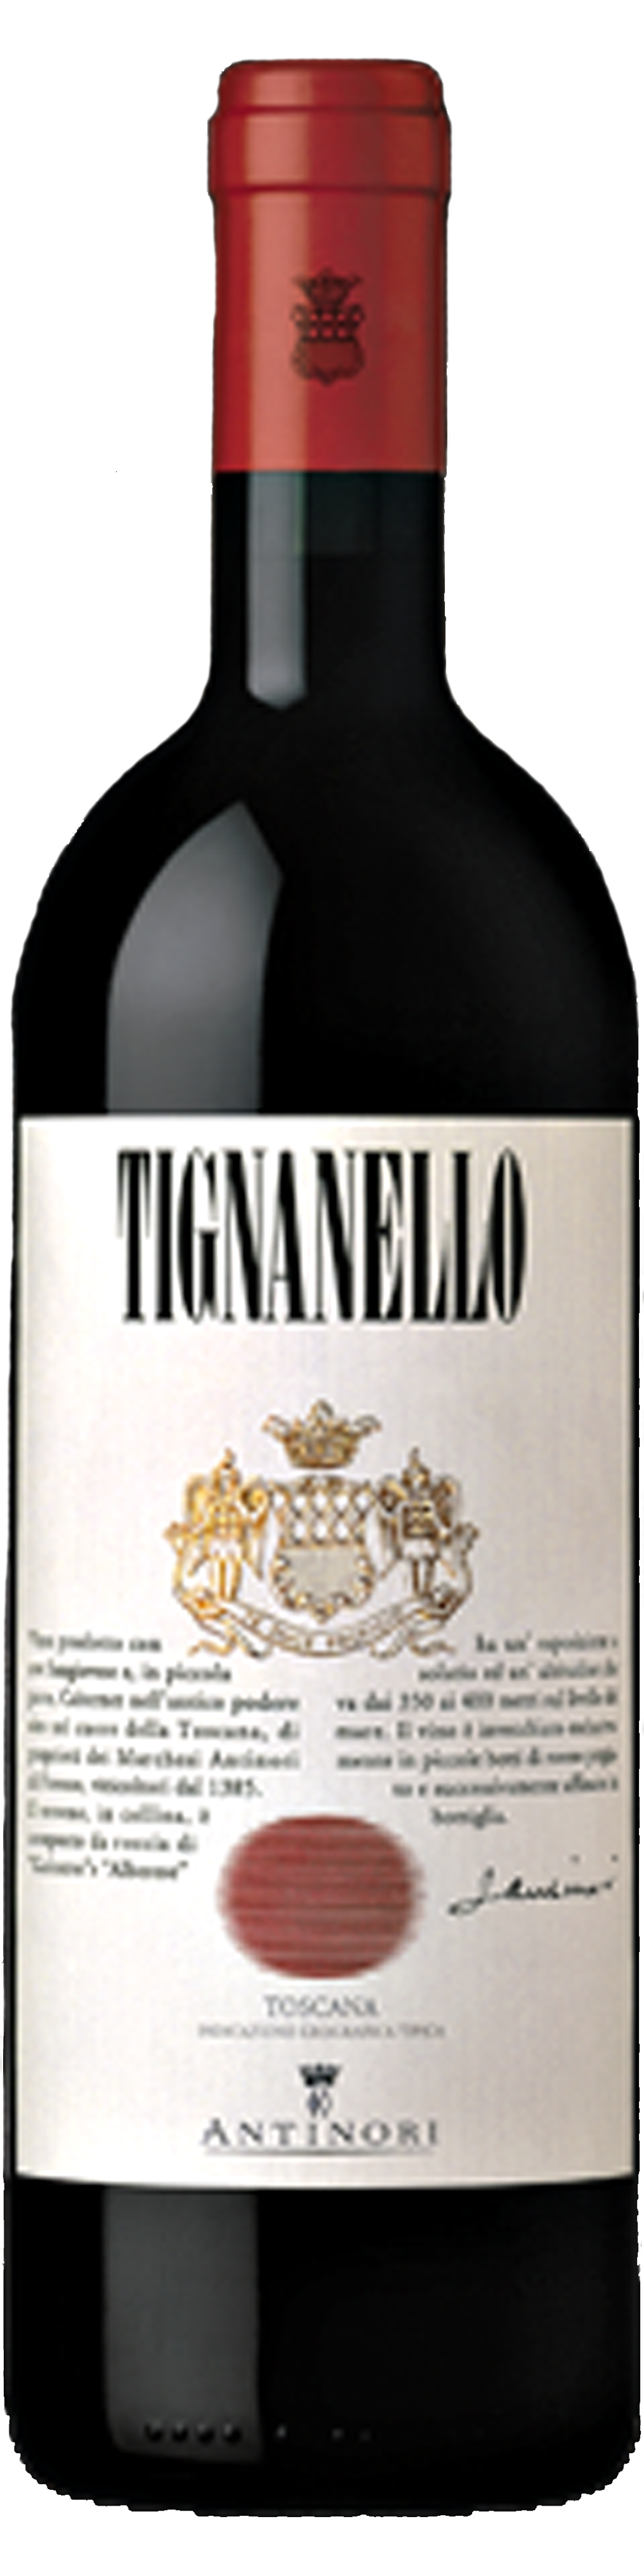 Image of product Tignanello